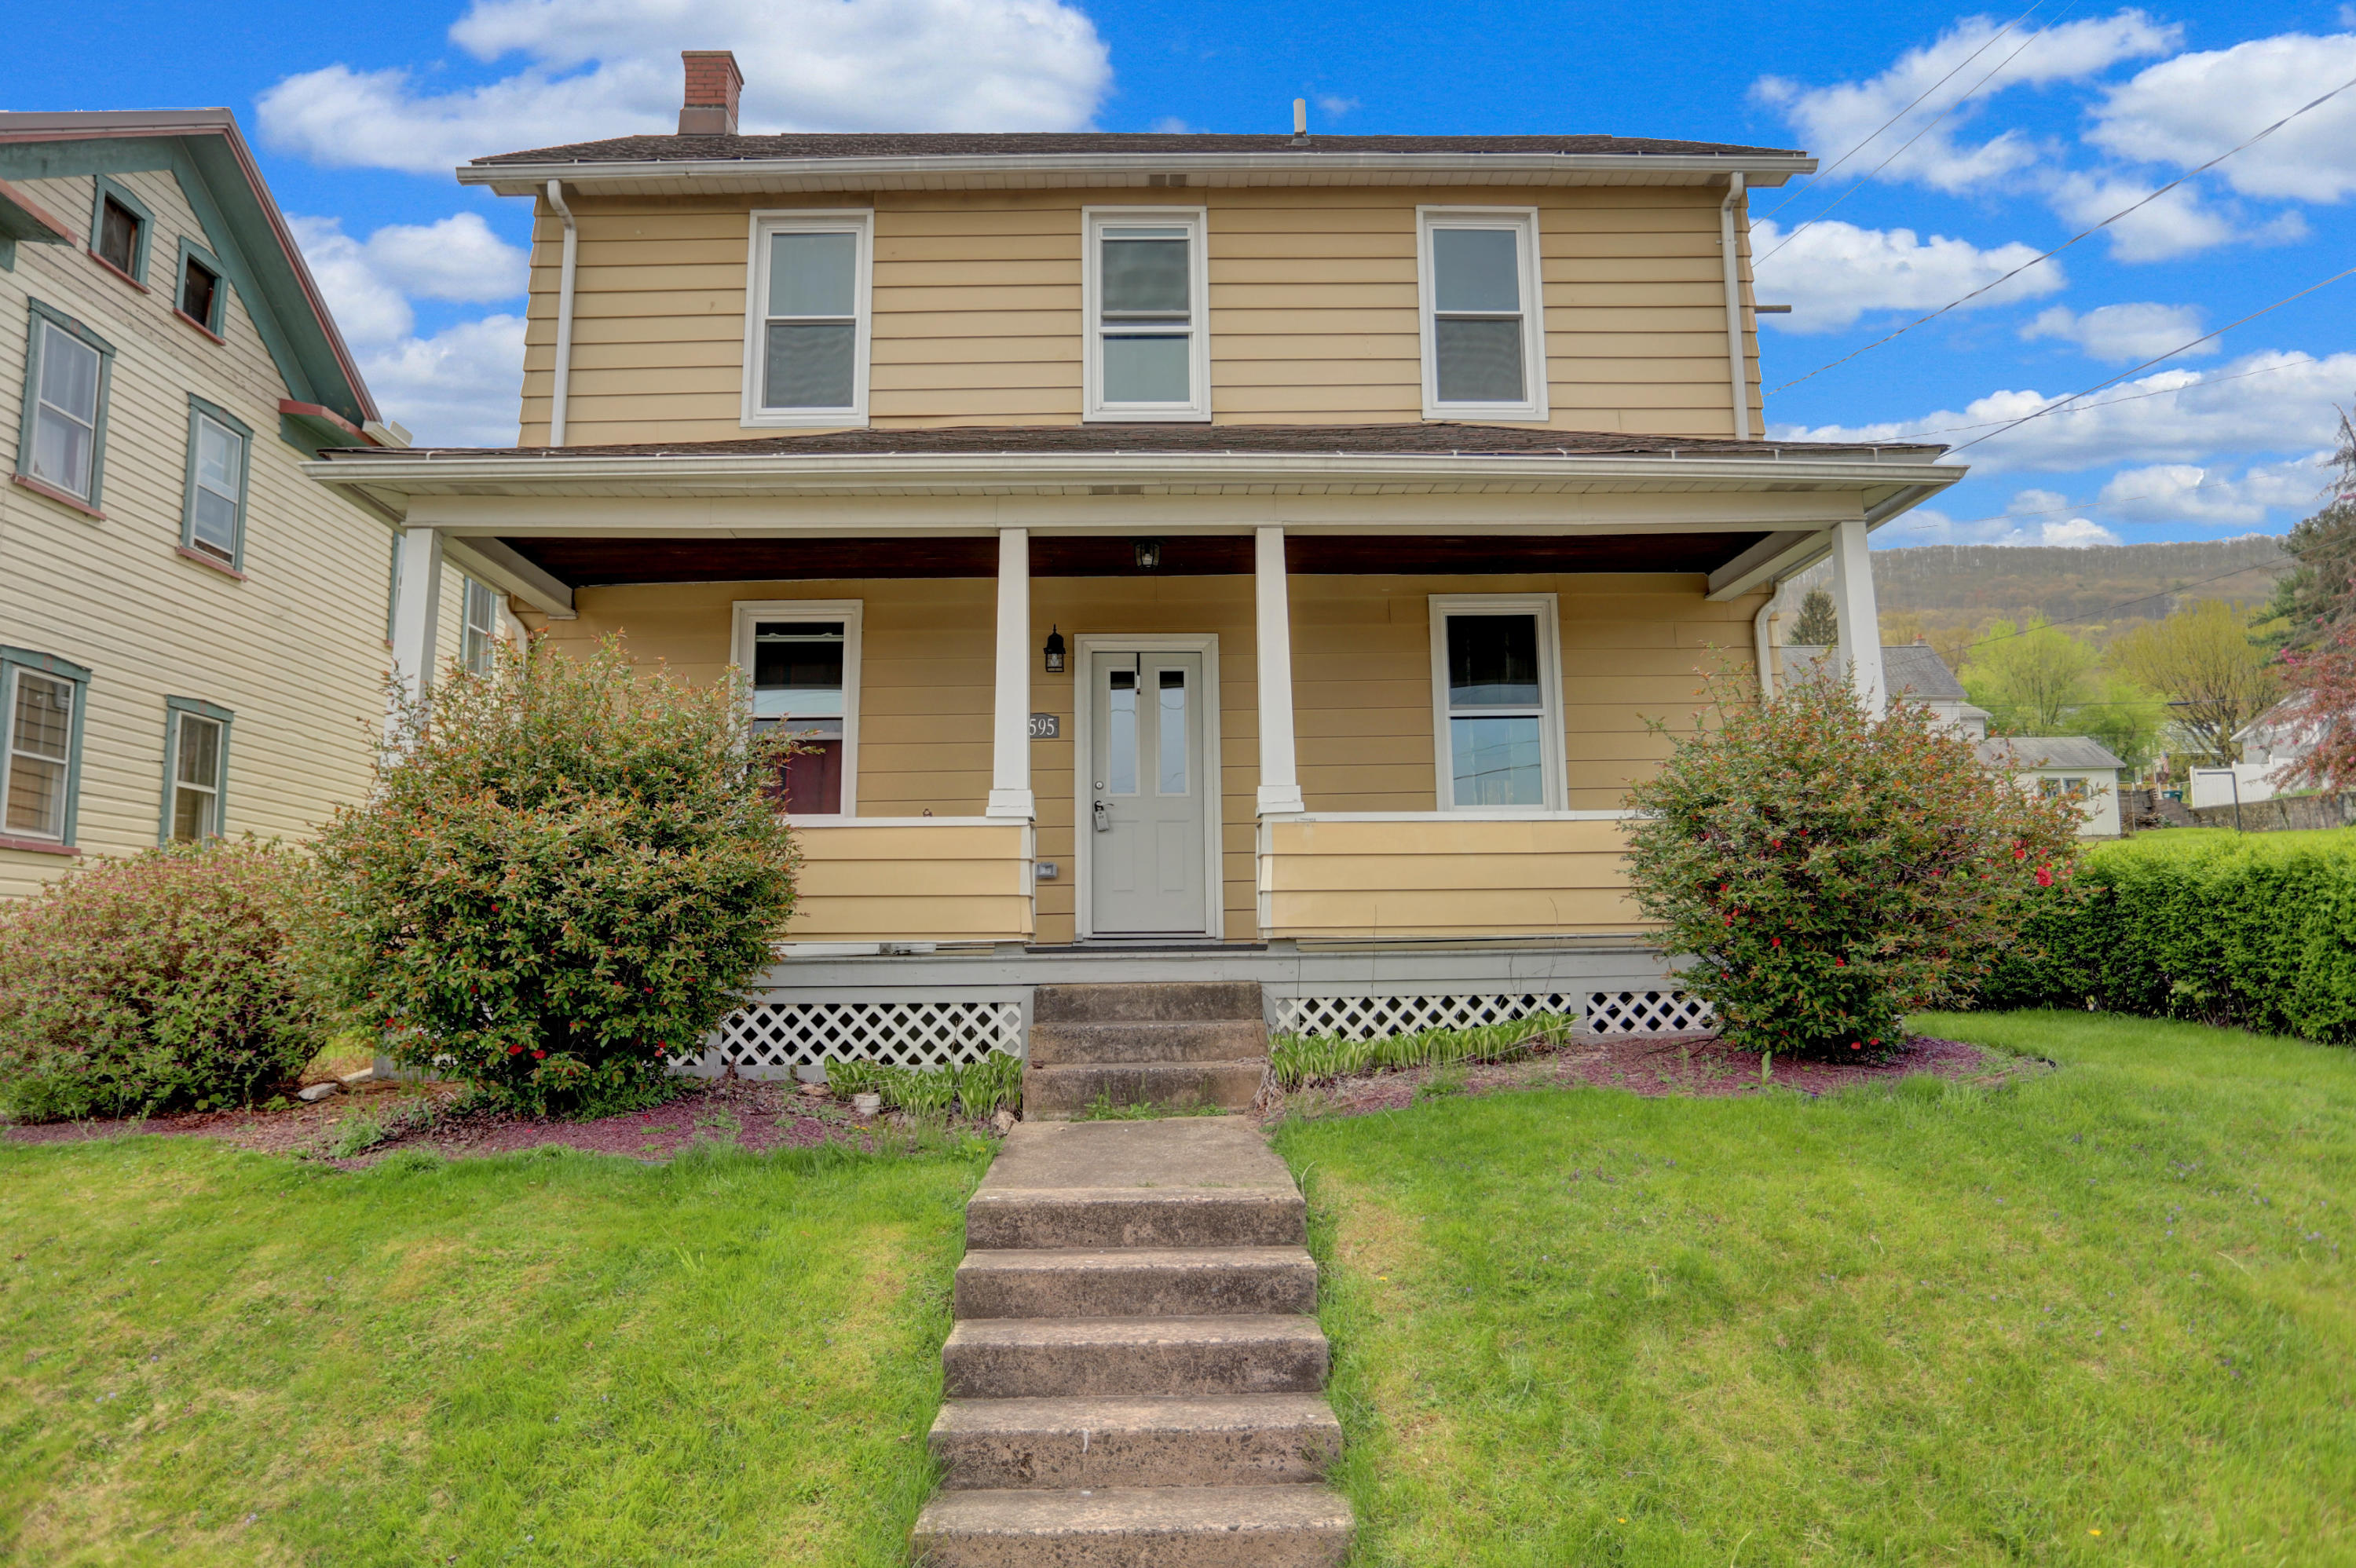 1595 SOUTHERN AVENUE, S. Williamsport, PA 17702, 3 Bedrooms Bedrooms, ,2 BathroomsBathrooms,Residential,For sale,SOUTHERN,WB-92328